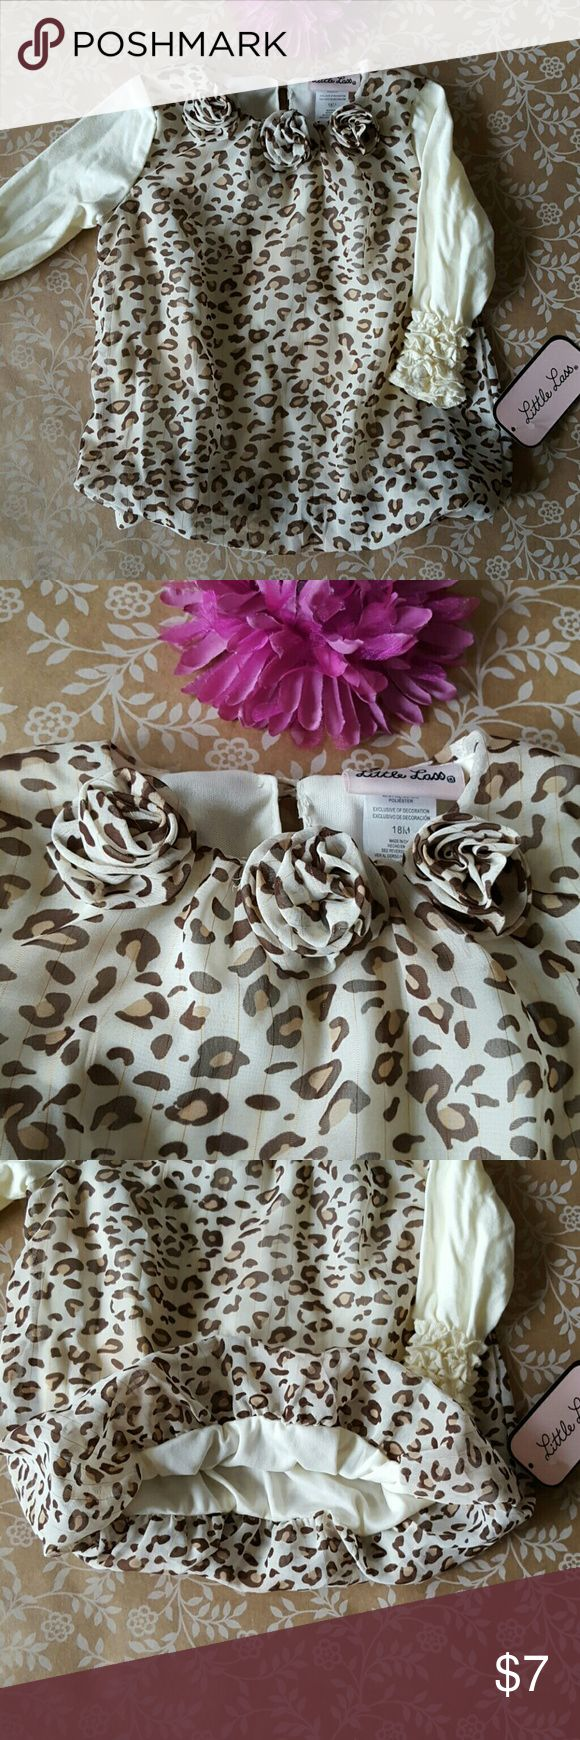 NWT! CHEETAH Print 18M Blouse Sheer, flowy cheetah print layer with built in under layer. Rosettes around neckline. Poufs around waist. Very elegant! See pics for details of fit! Little Lass Shirts & Tops Blouses